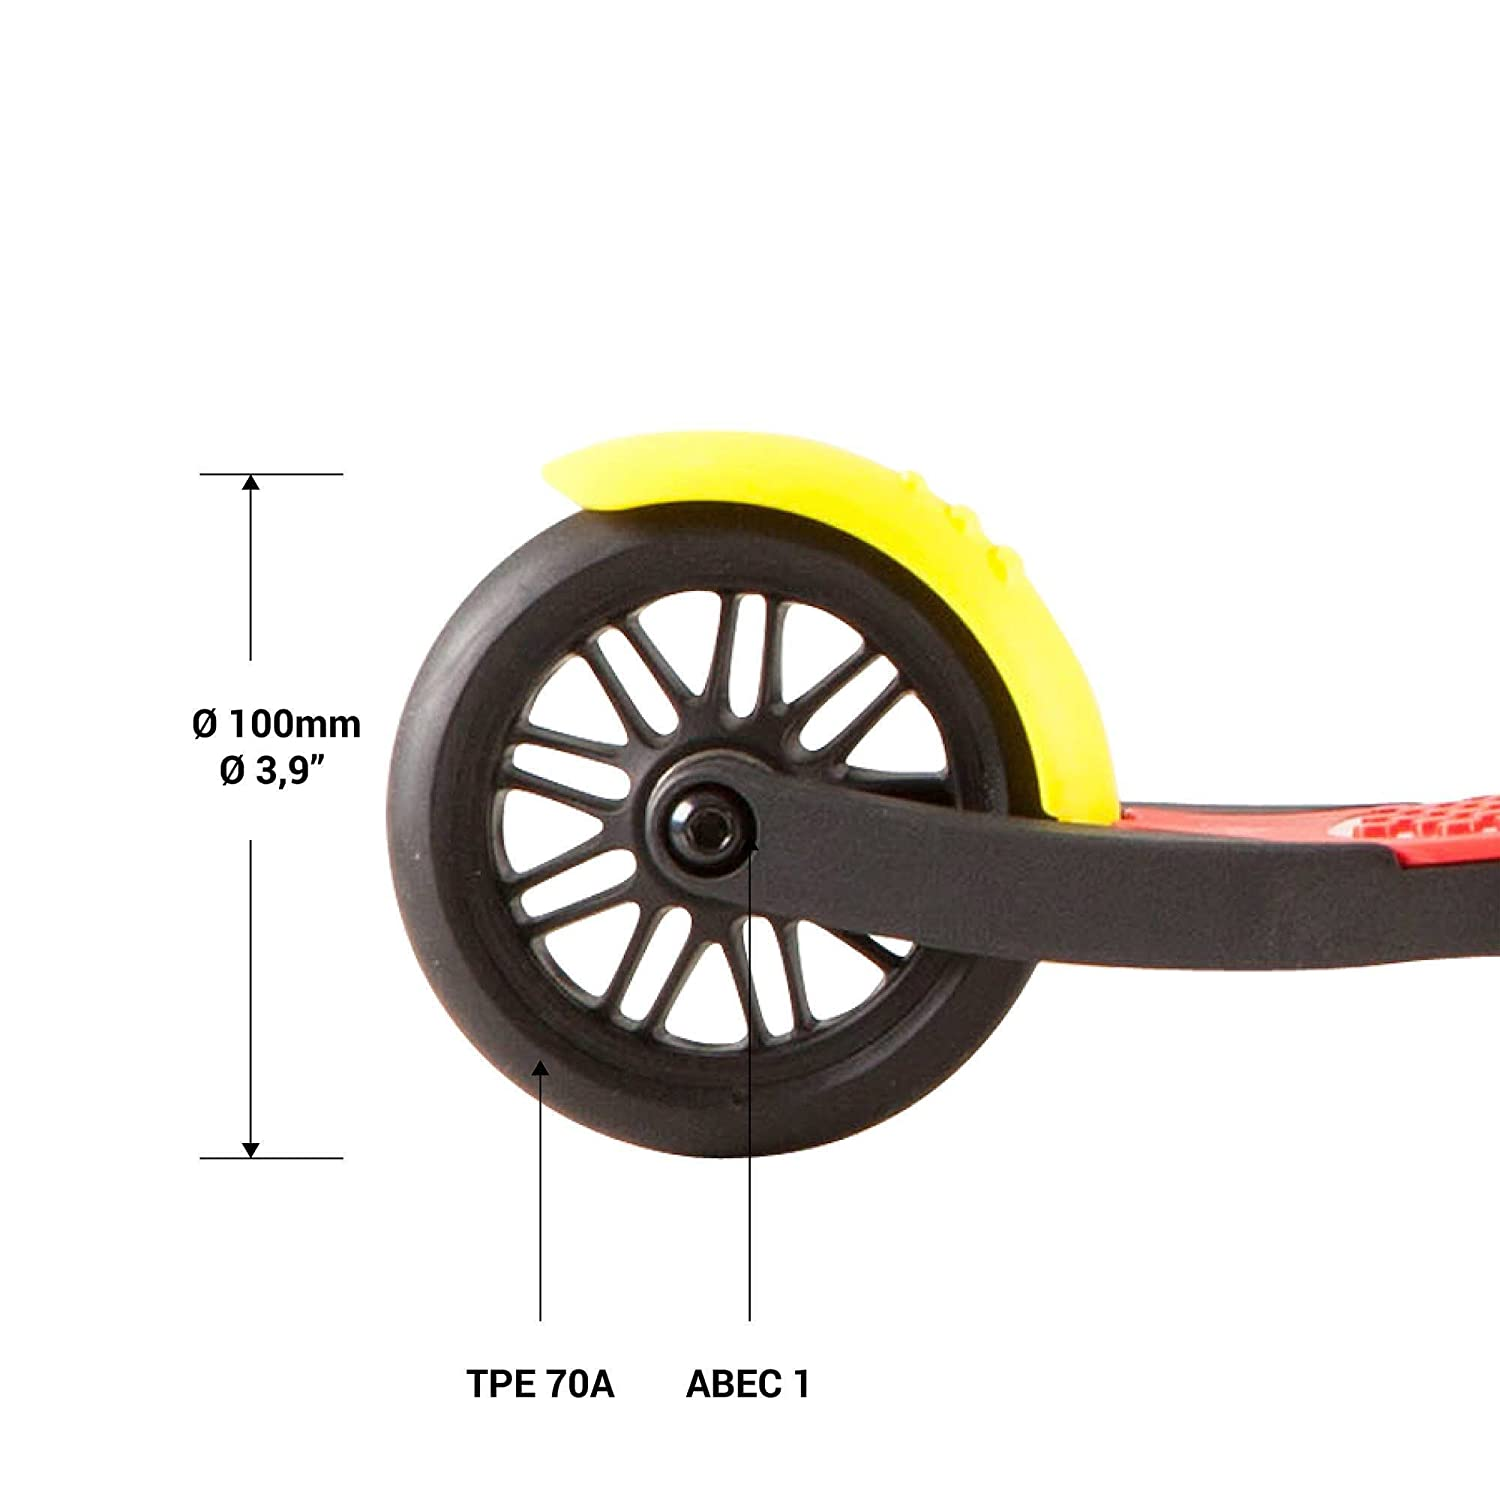 OXELO B1 - 3 Rubber Wheels Scooter for Kids (up to 44 lb) Foldable Kick Scooter with Adjustable Height Handlebar. Lightweight 3.30 lb